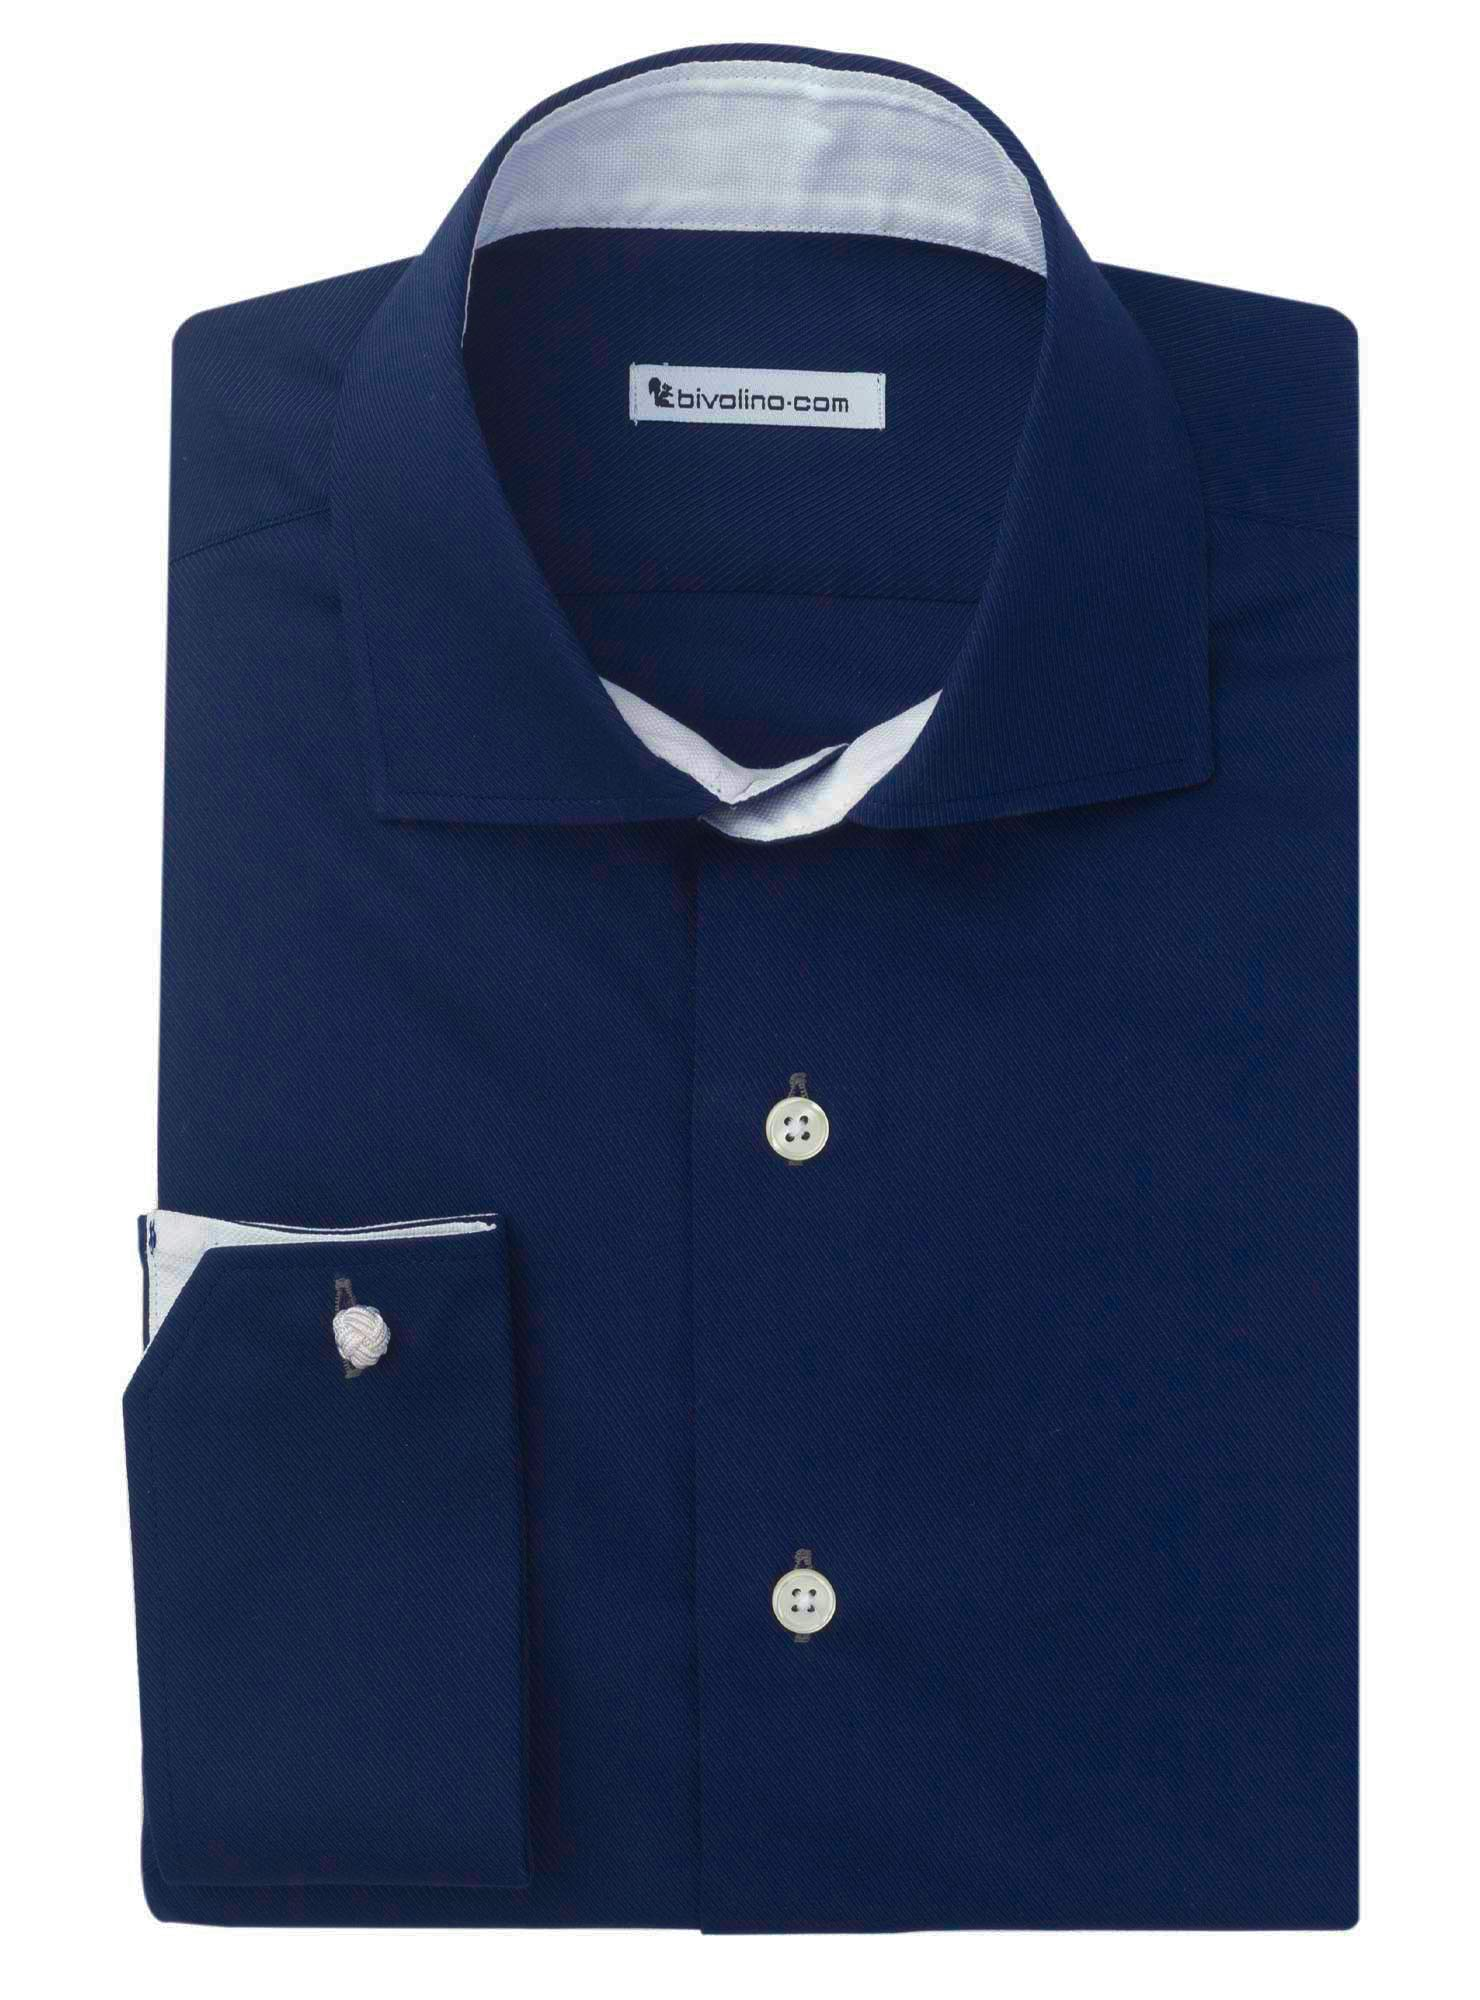 FLORENCE - chemise homme twill navy cot-pes uni - RESO 4